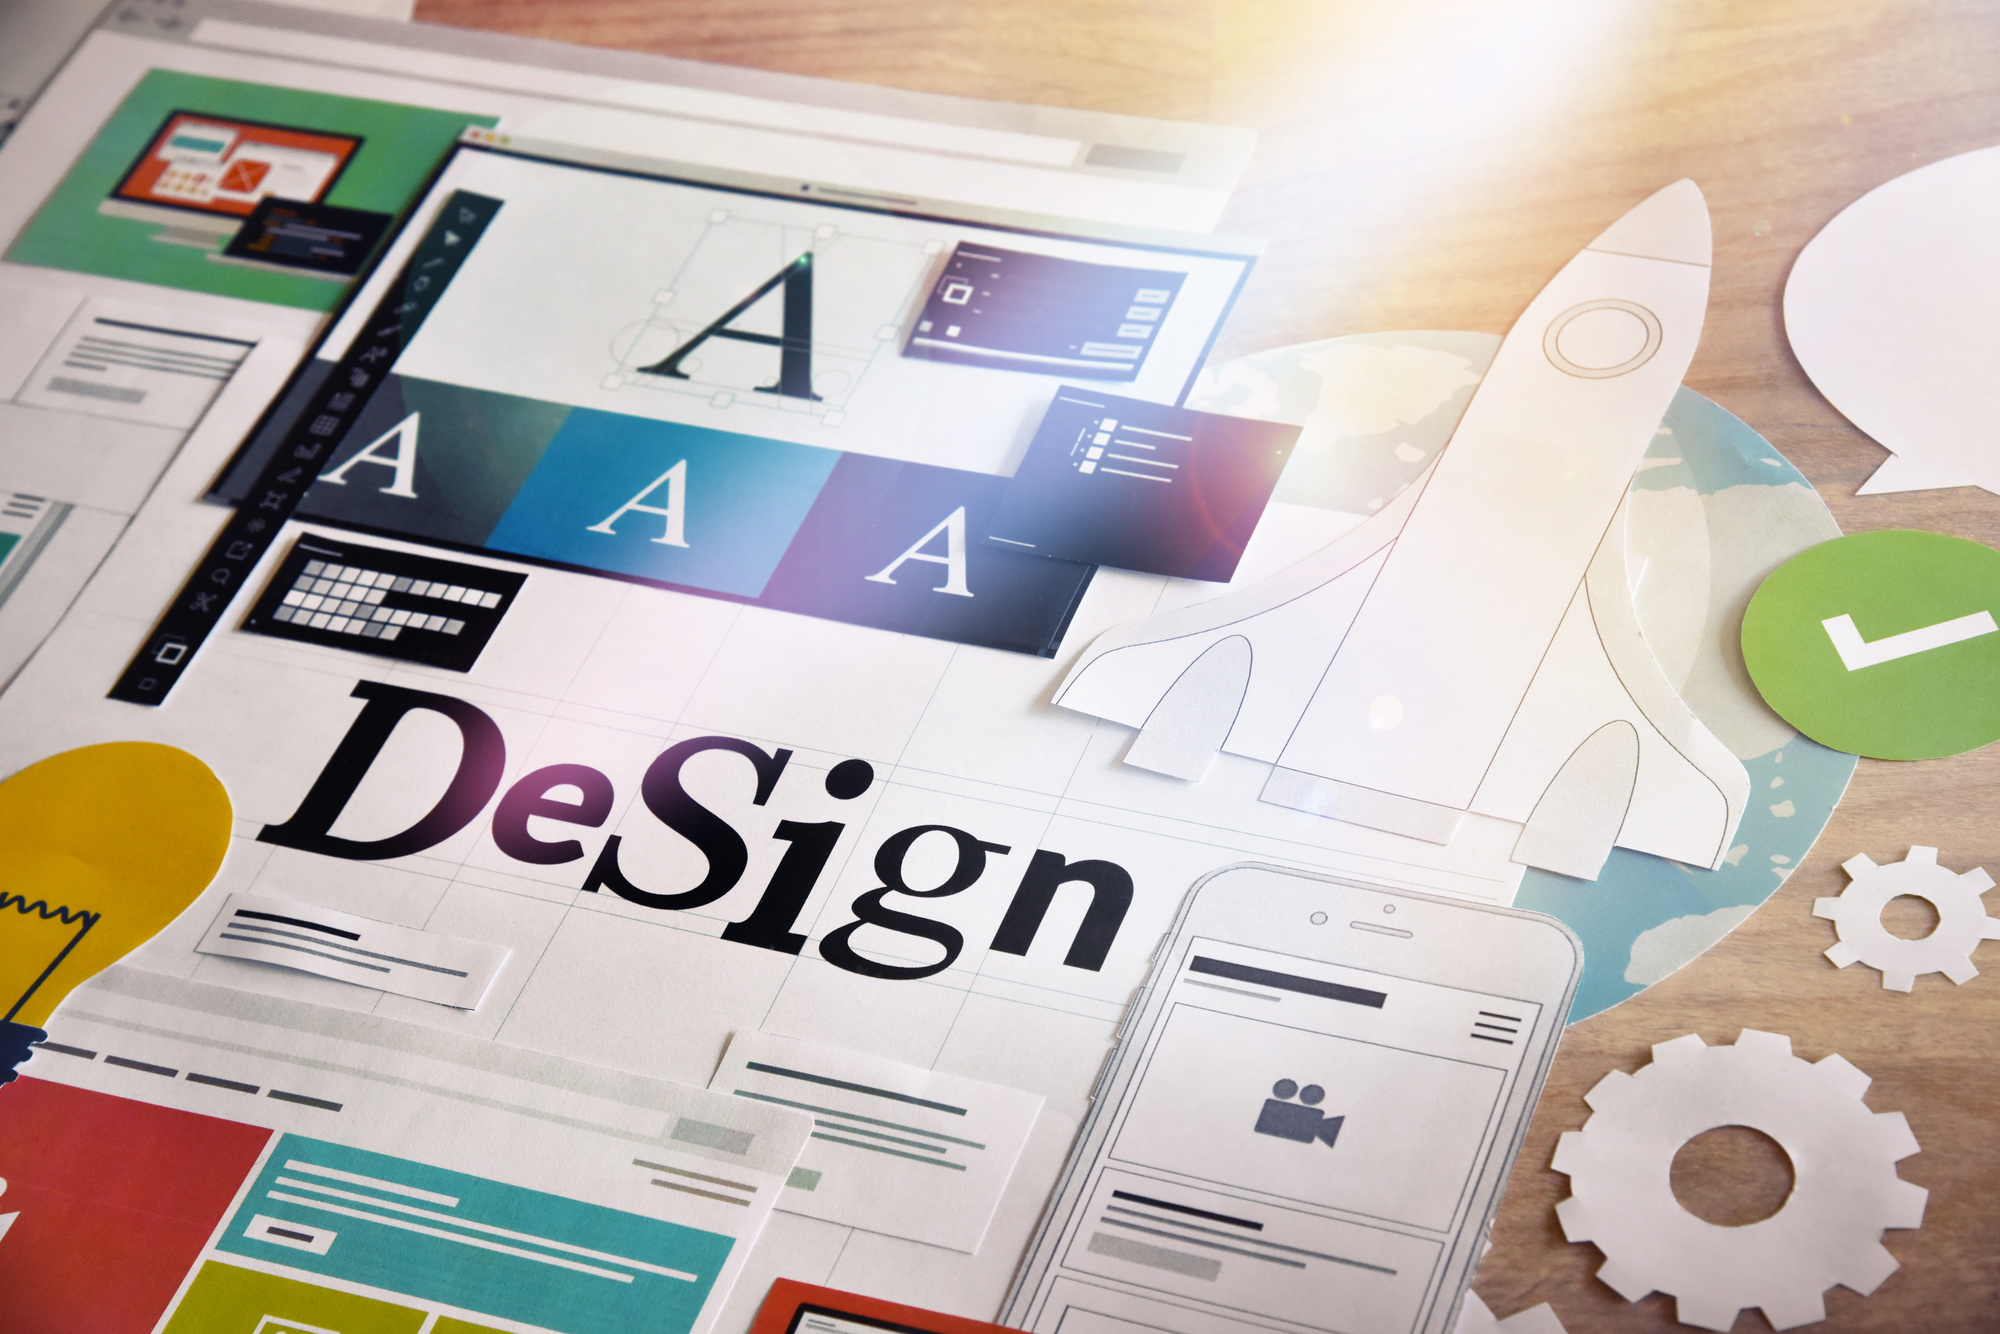 4 Simple Graphic Design Tips for a Flawless Design